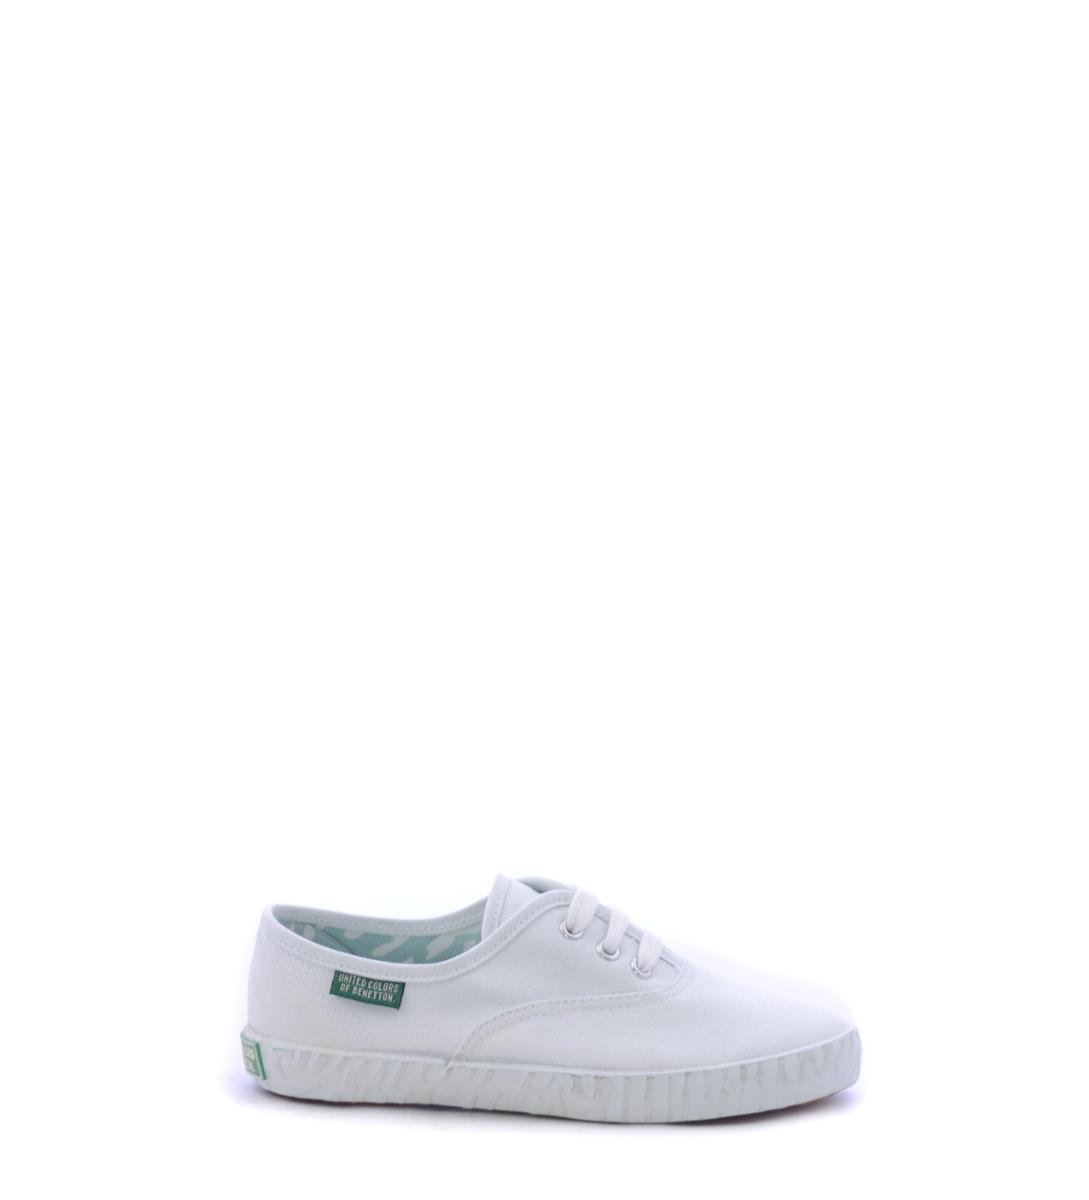 954c3ed668a UNITED COLORS OF BENETTON Casual Παιδικά Παπούτσια